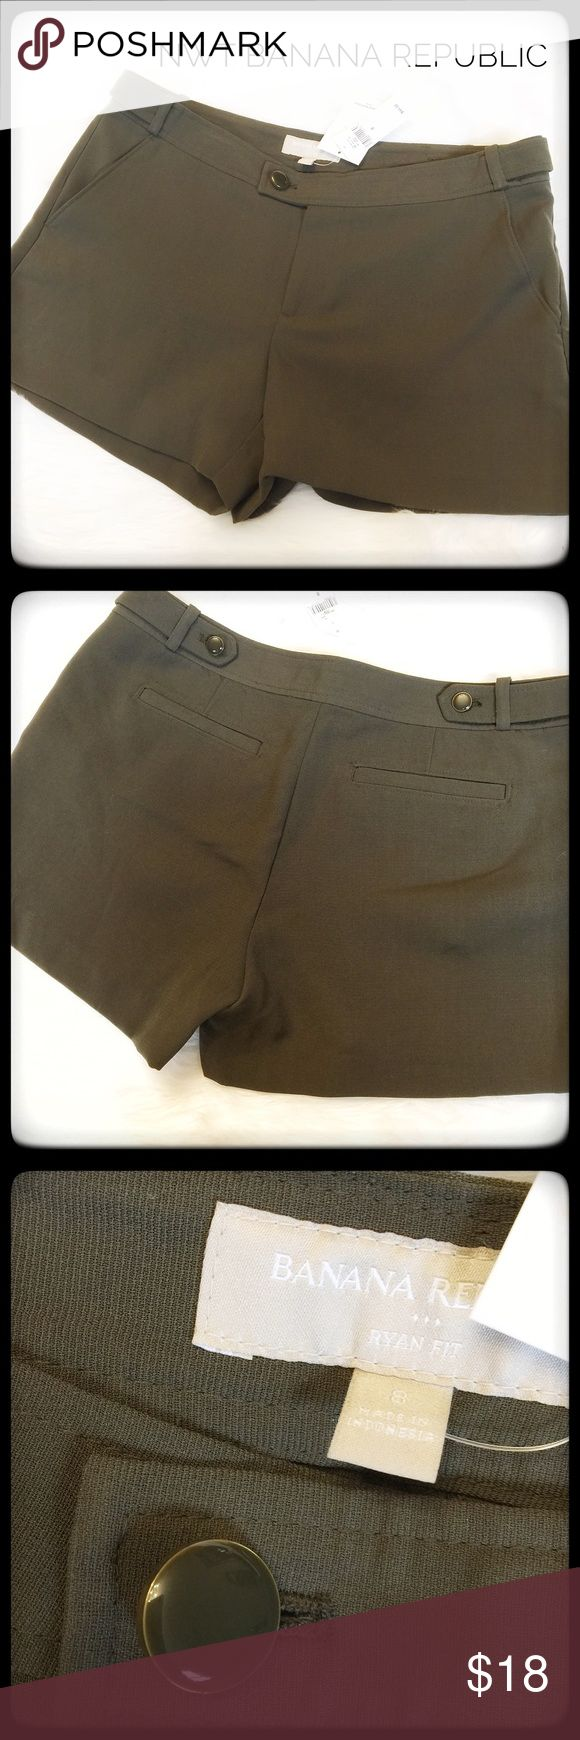 NWT Banana Republic Olive Shorts Flowing Material Classy and sophisticated olive shorts by BR. They have a more dressy appeal with the material being a Dressier material and the button accents. These are NWT and in excellent condition. Banana Republic Shorts